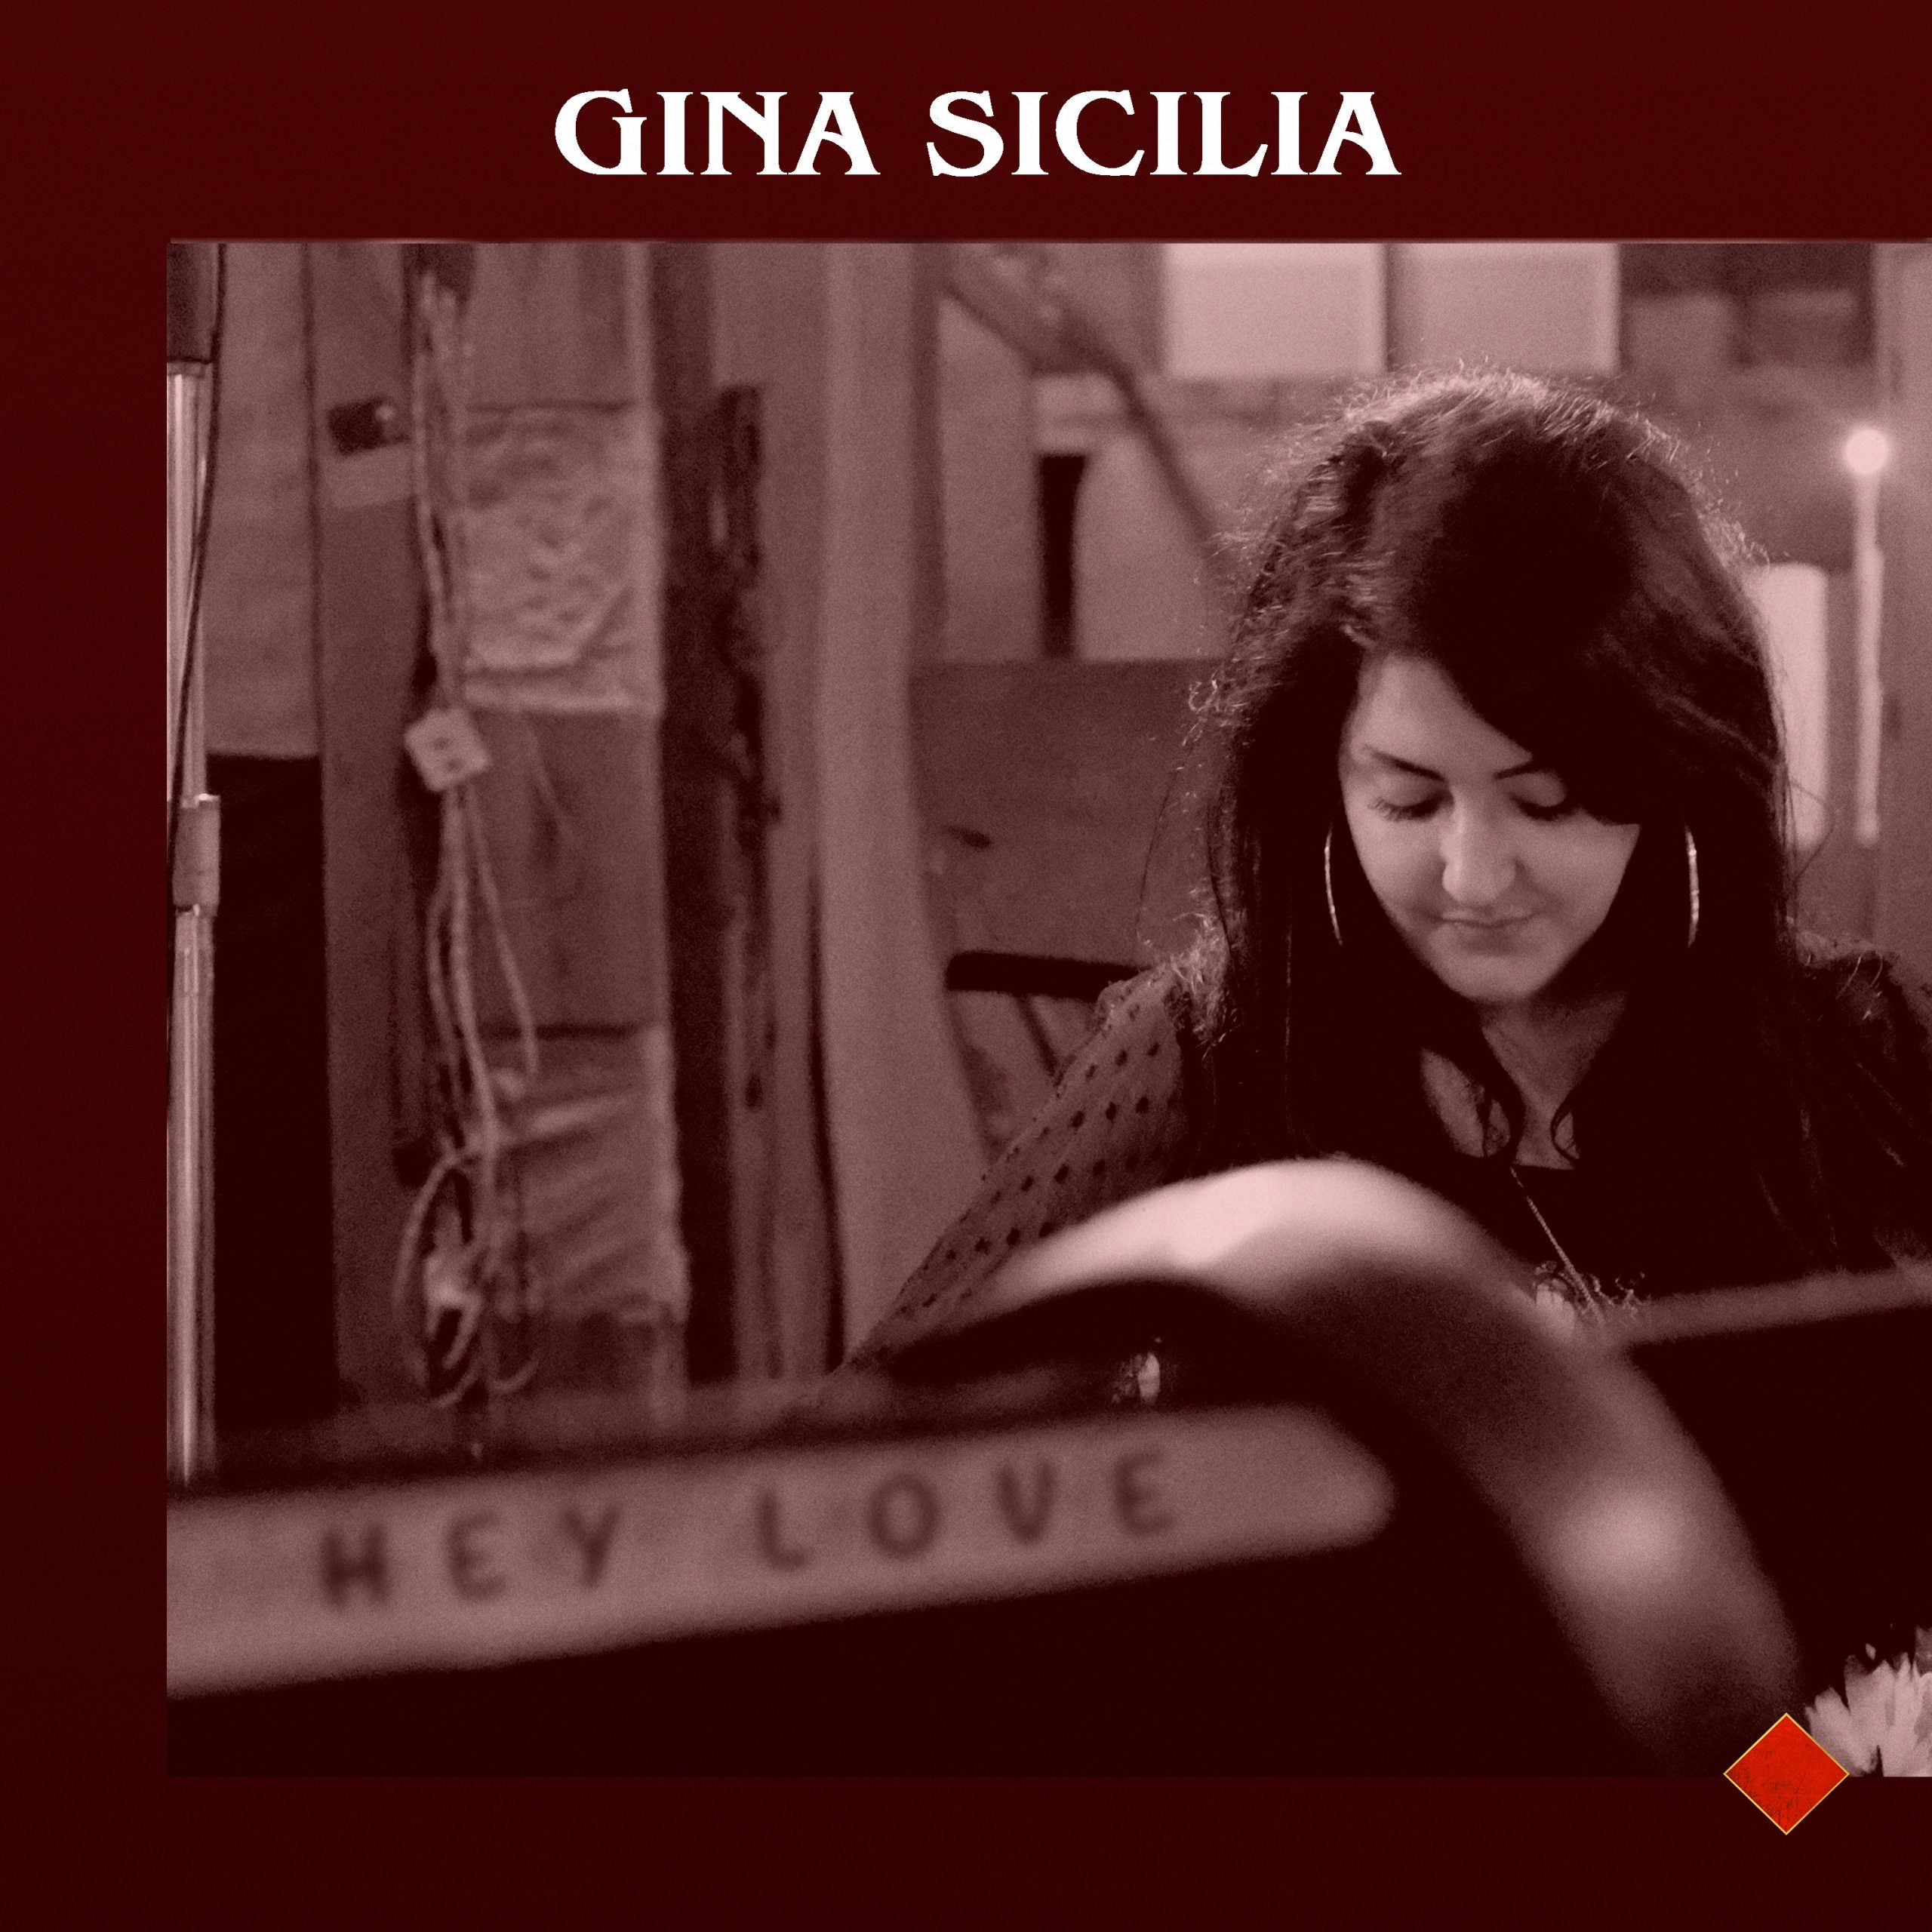 """Gina Sicilia releases Memphis inspired single """"Hey Love"""" from anticipated record """"Love Me Madly, recorded at Royal Studios"""